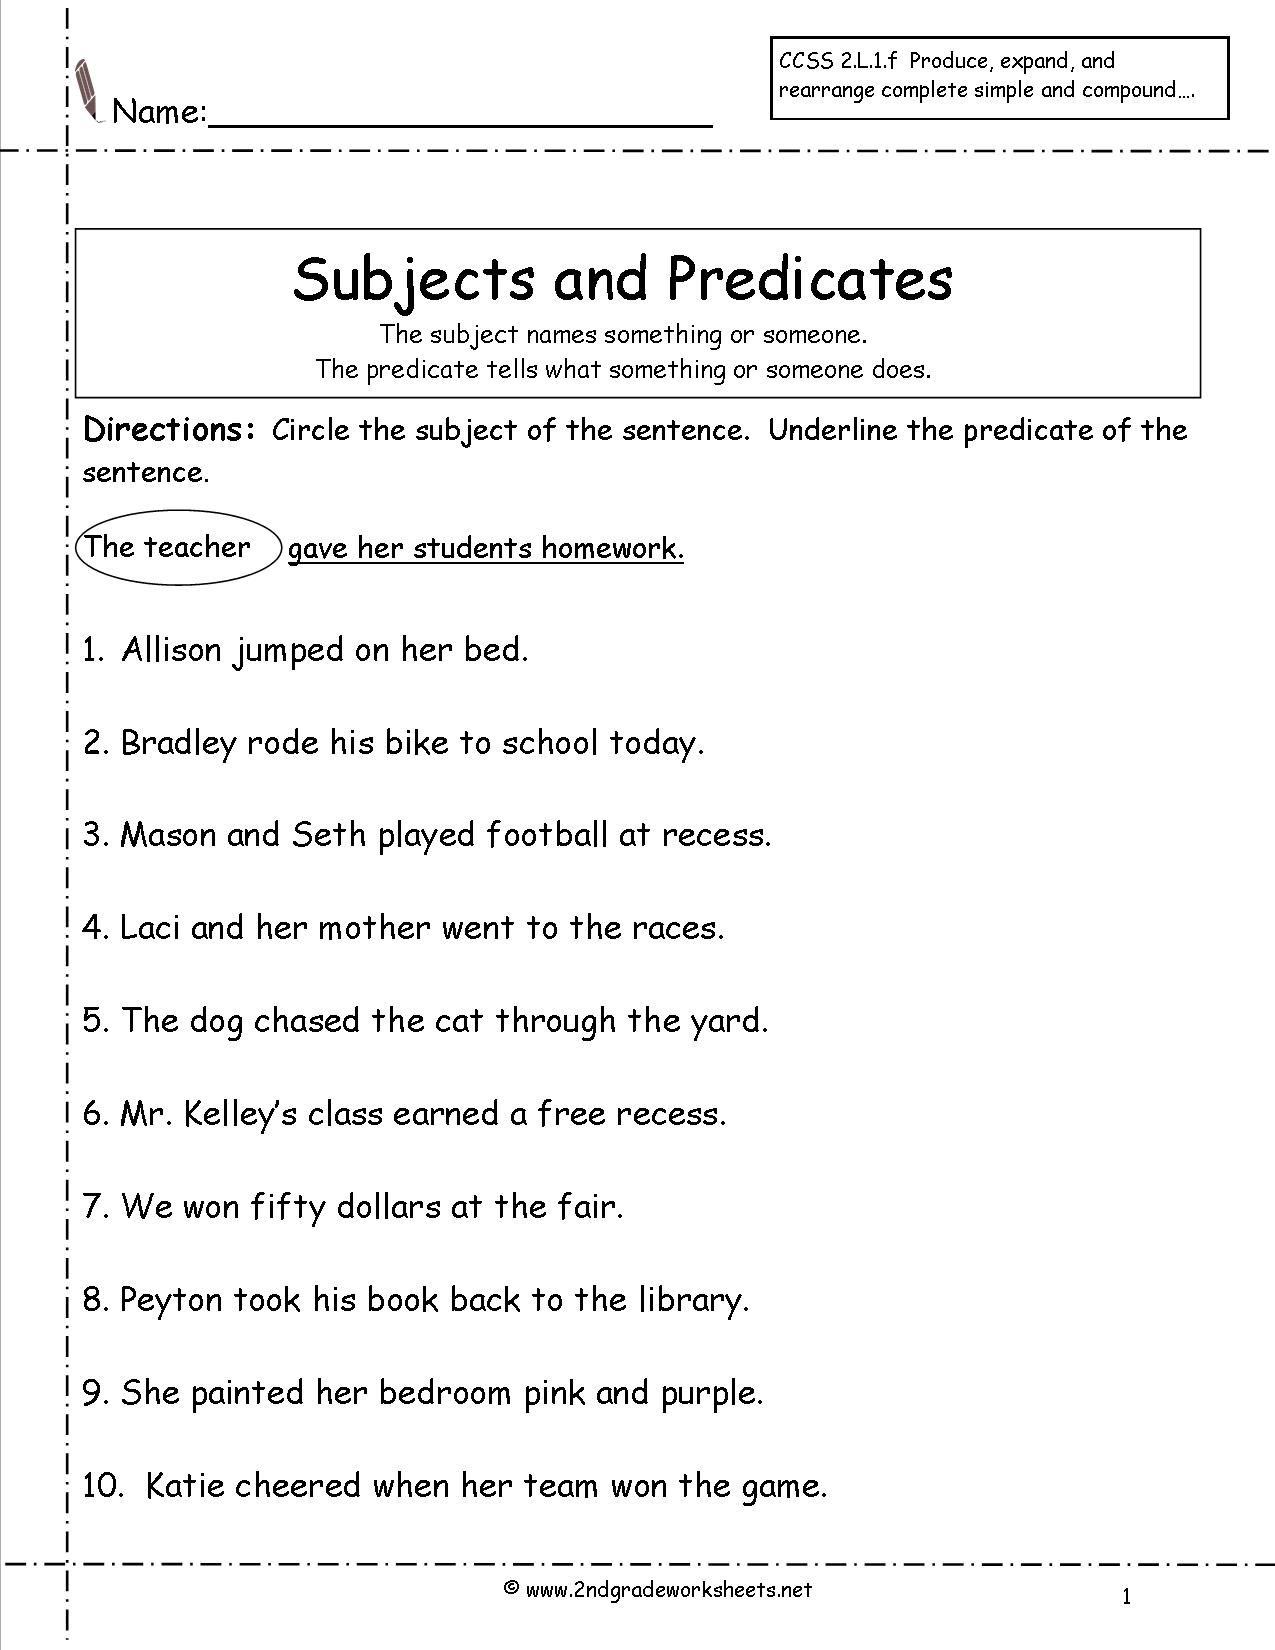 Subject Predicate Worksheets 2Nd Grade - Google Search | Kid Stuff - Free Printable Subject Predicate Worksheets 2Nd Grade